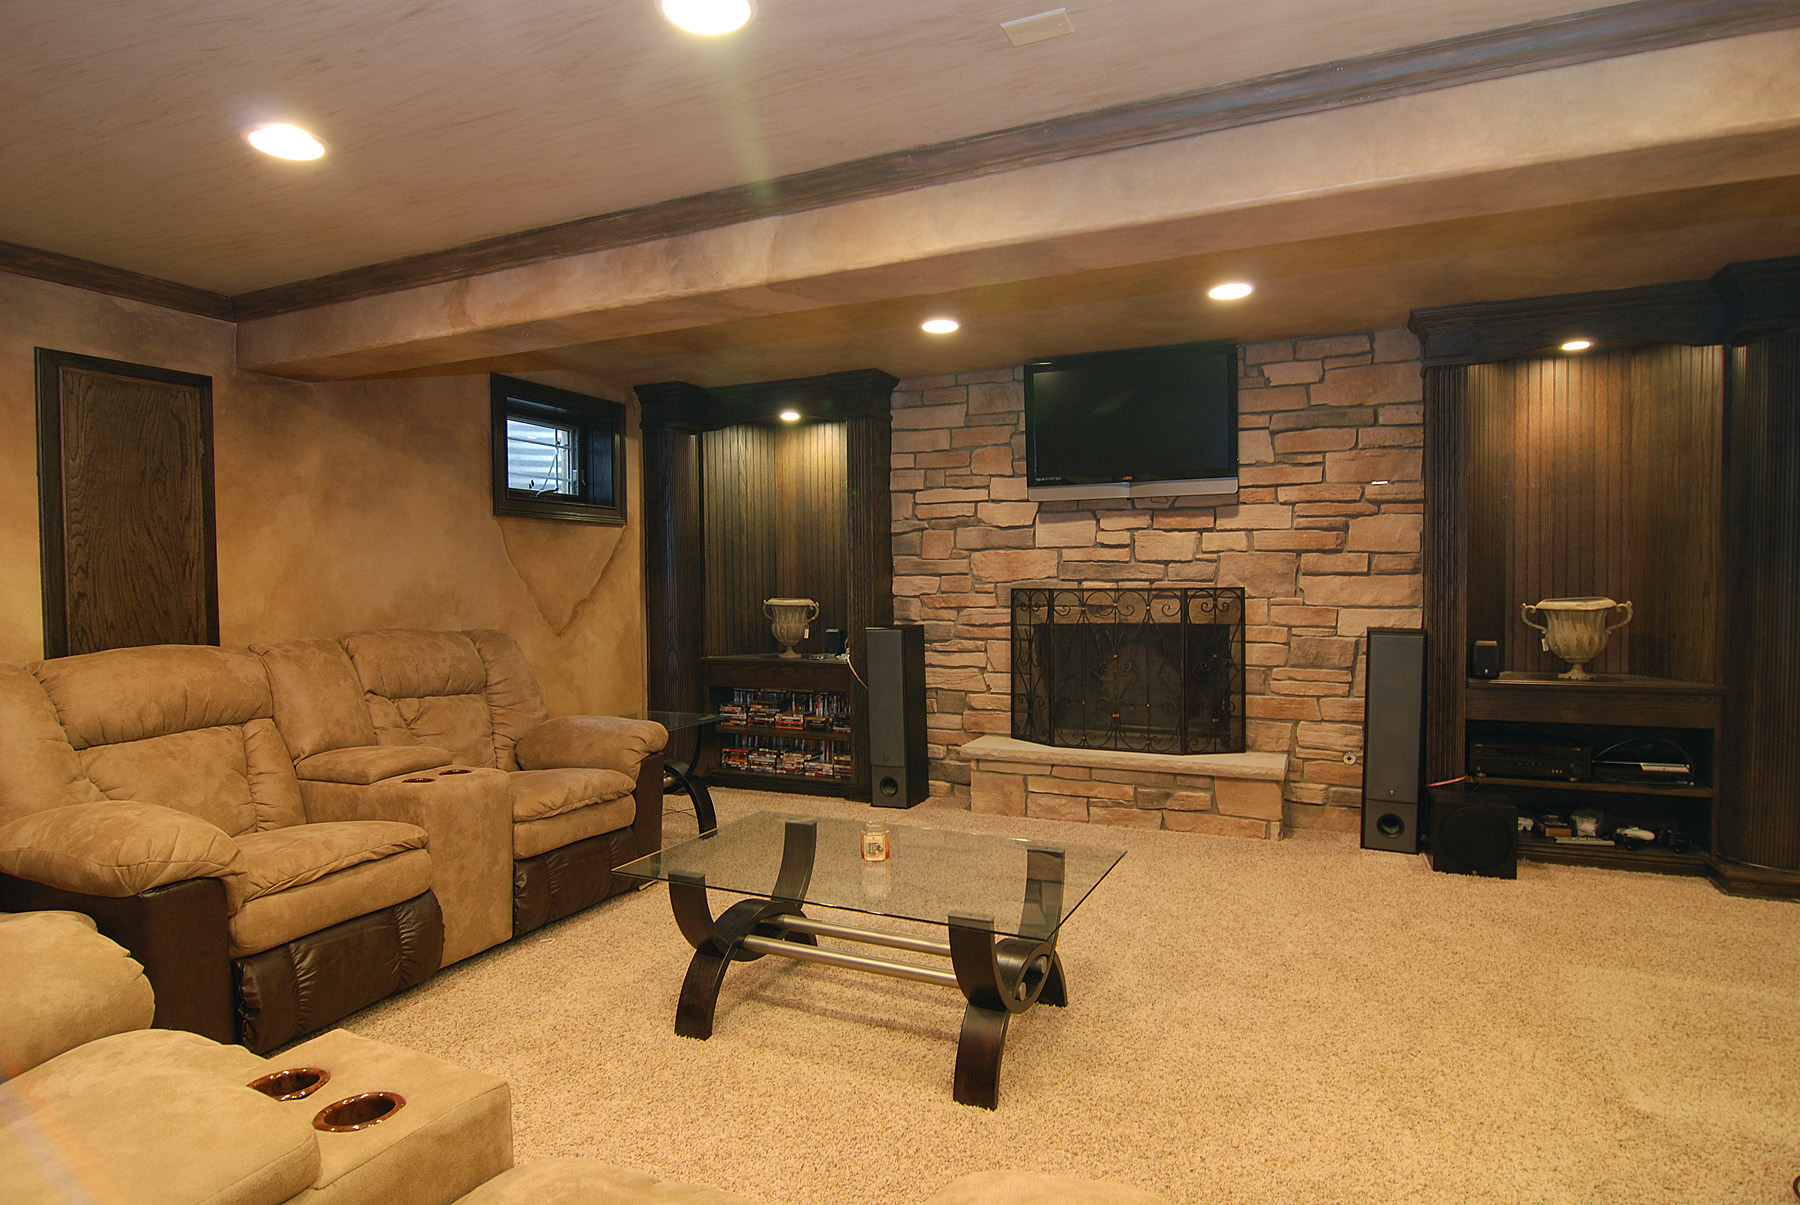 Chicago basement remodeling basement remodel chicago basement finishing homewerks - Basements ideas ...